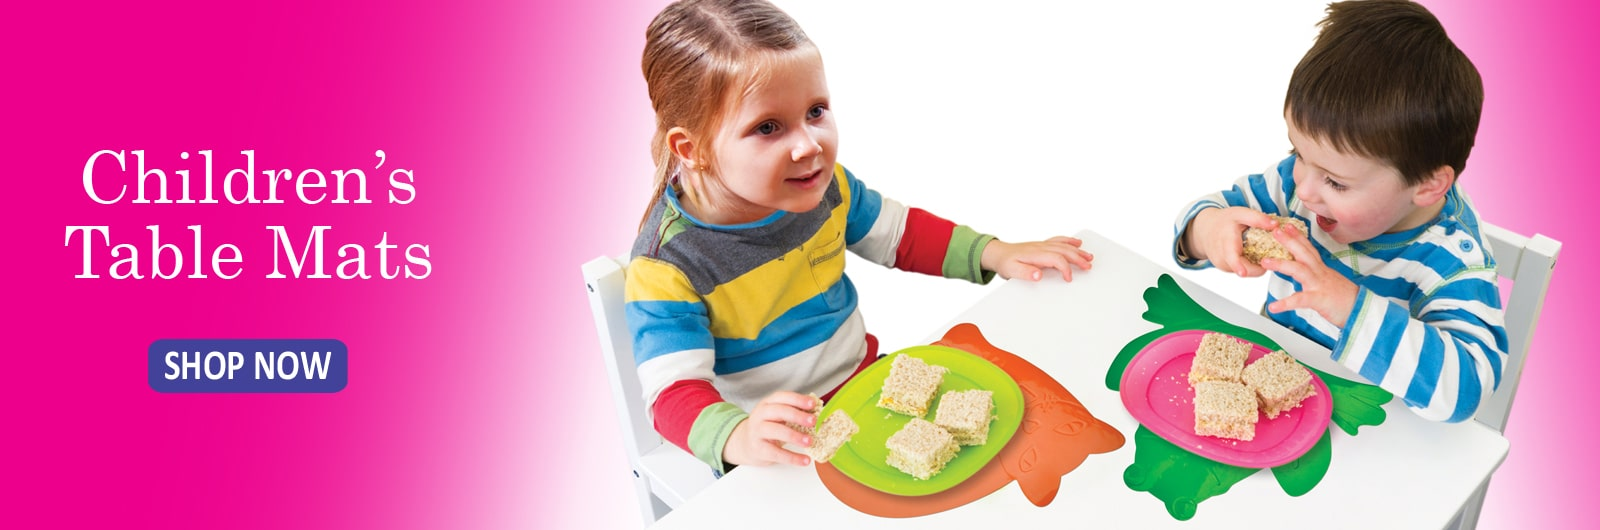 Children's Anti-Slip Table Mats